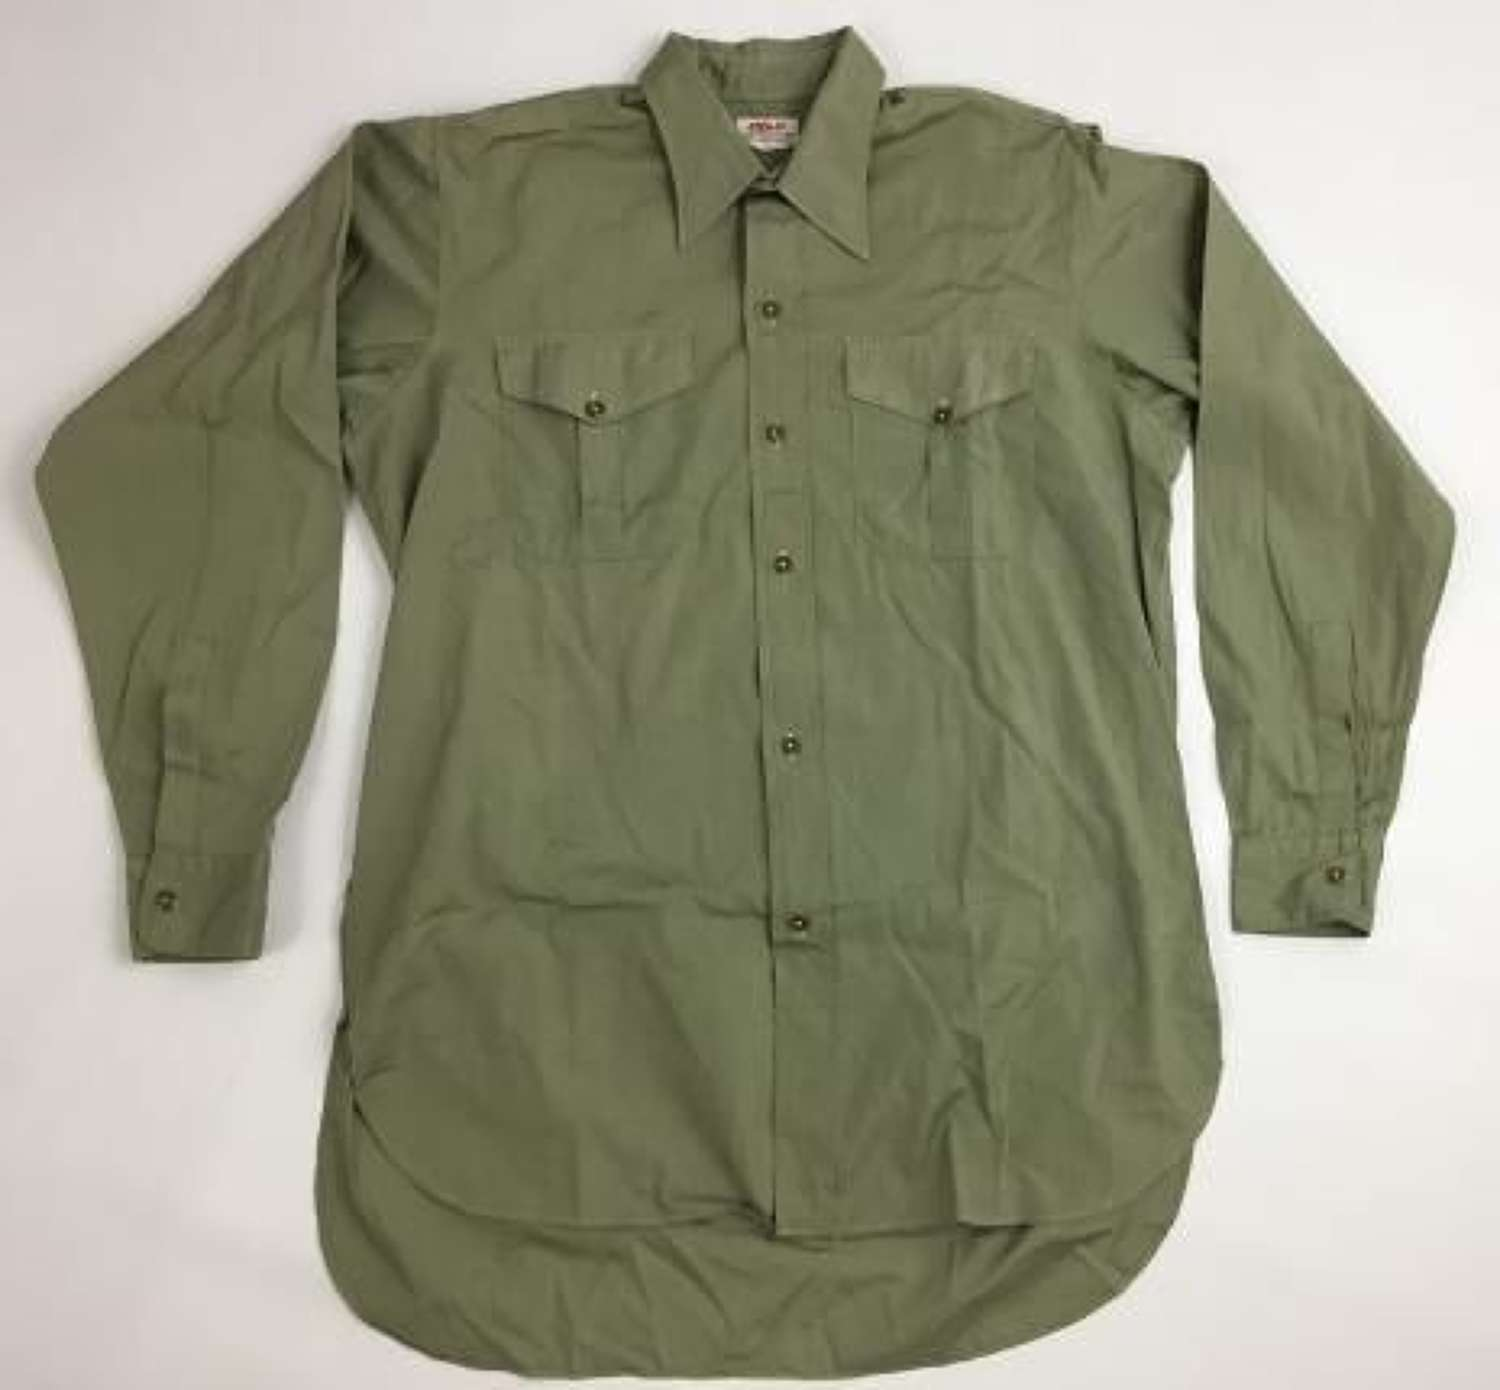 Original WW2 Era British Army Officers Shirt by 'Alkit'